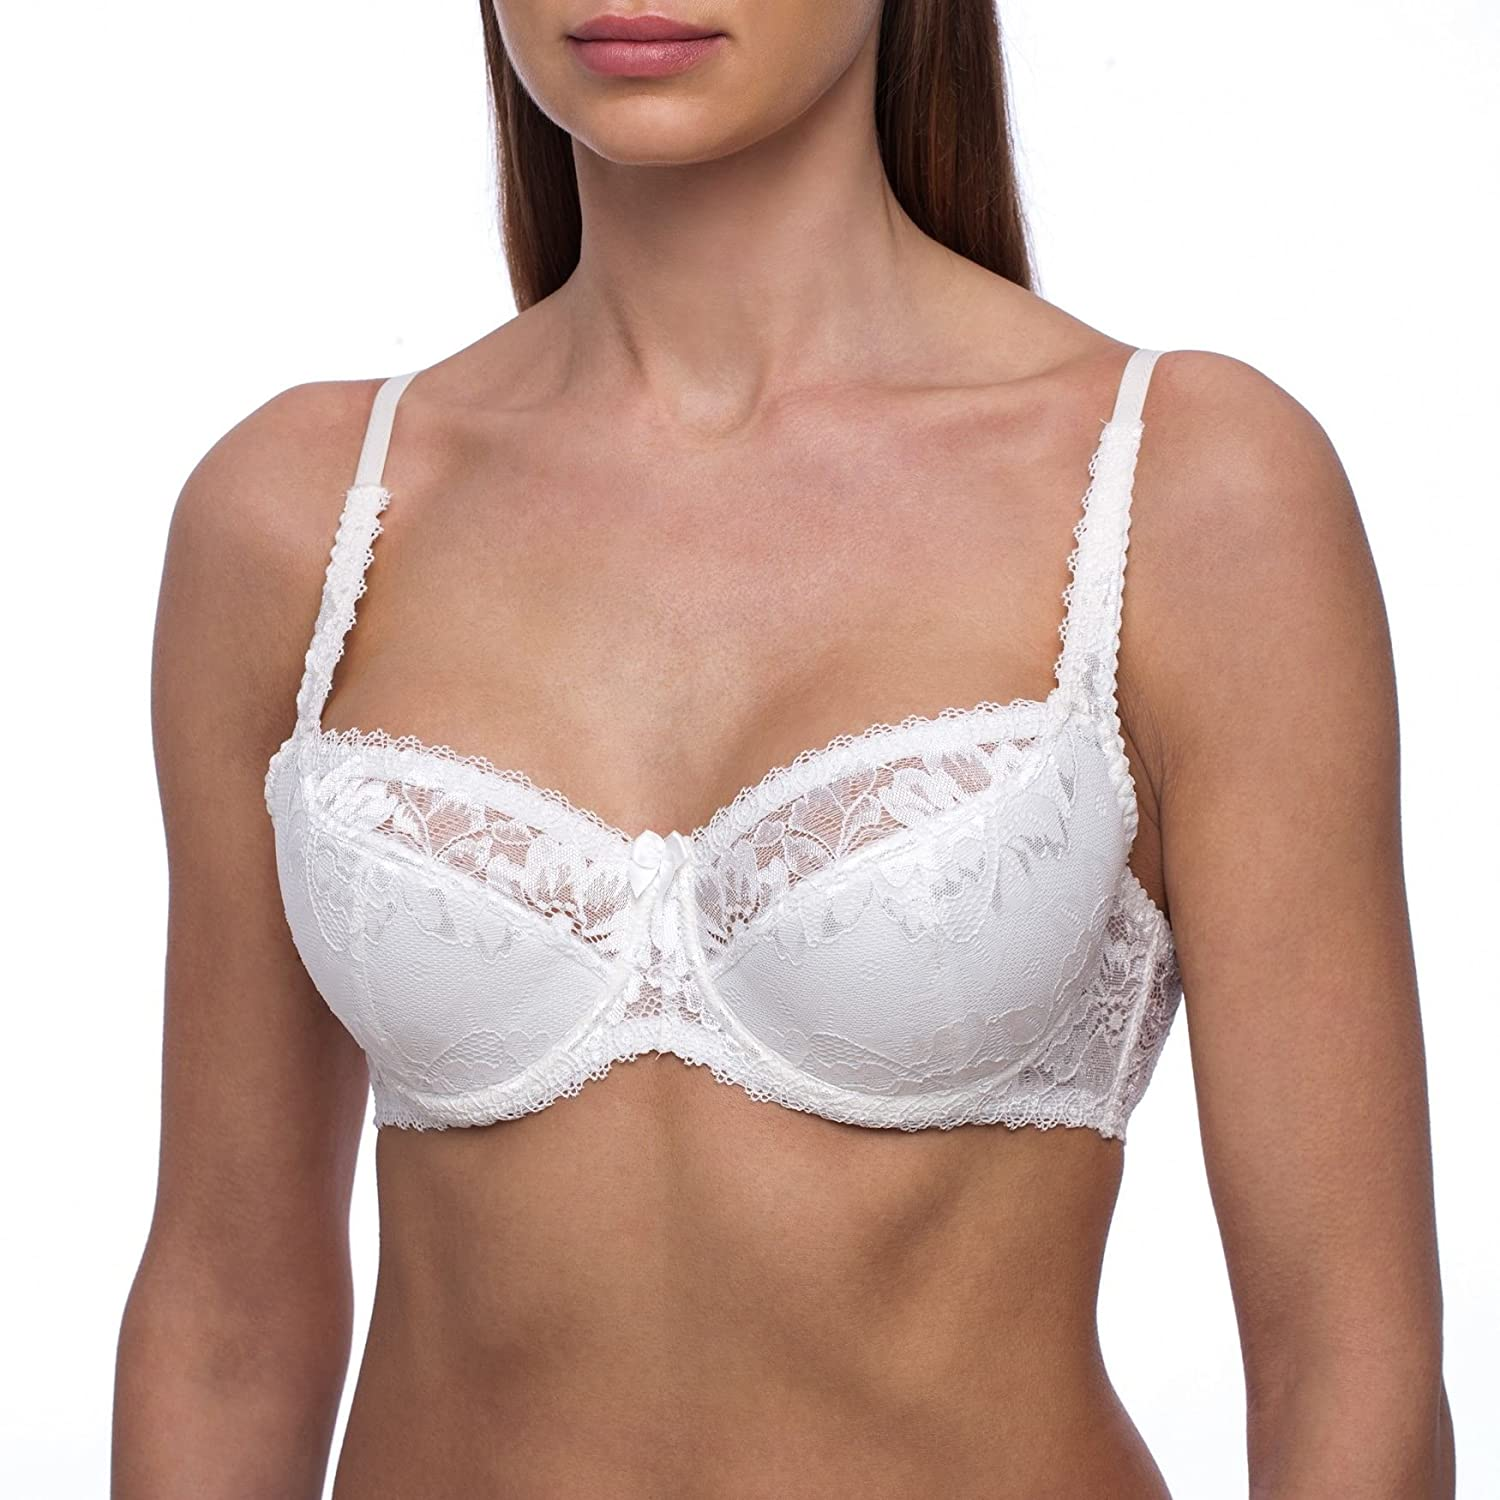 60cef8a98737e frugue Women s Full Coverage Minimizer Plus Size Underwire Padded Bra at  Amazon Women s Clothing store